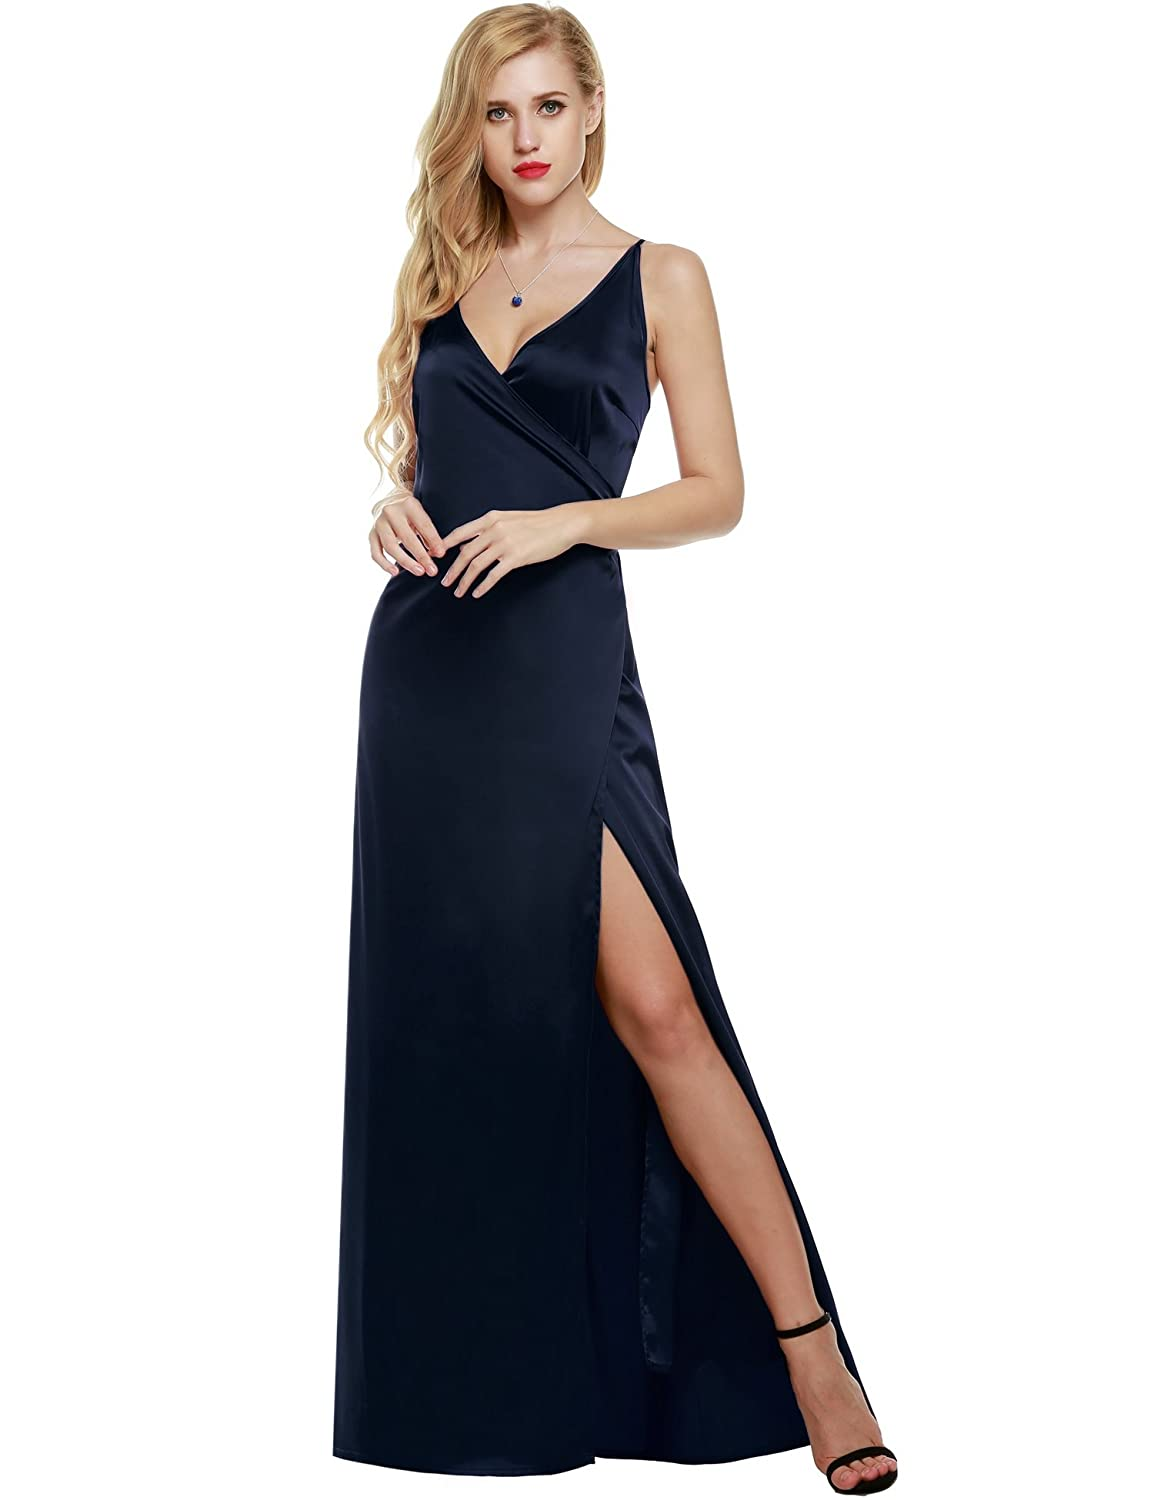 CRAVOG Damen Ärmellos Bodycon Einfarbig Sommerkleid Maxikleid Tank Dress Langes Kleid